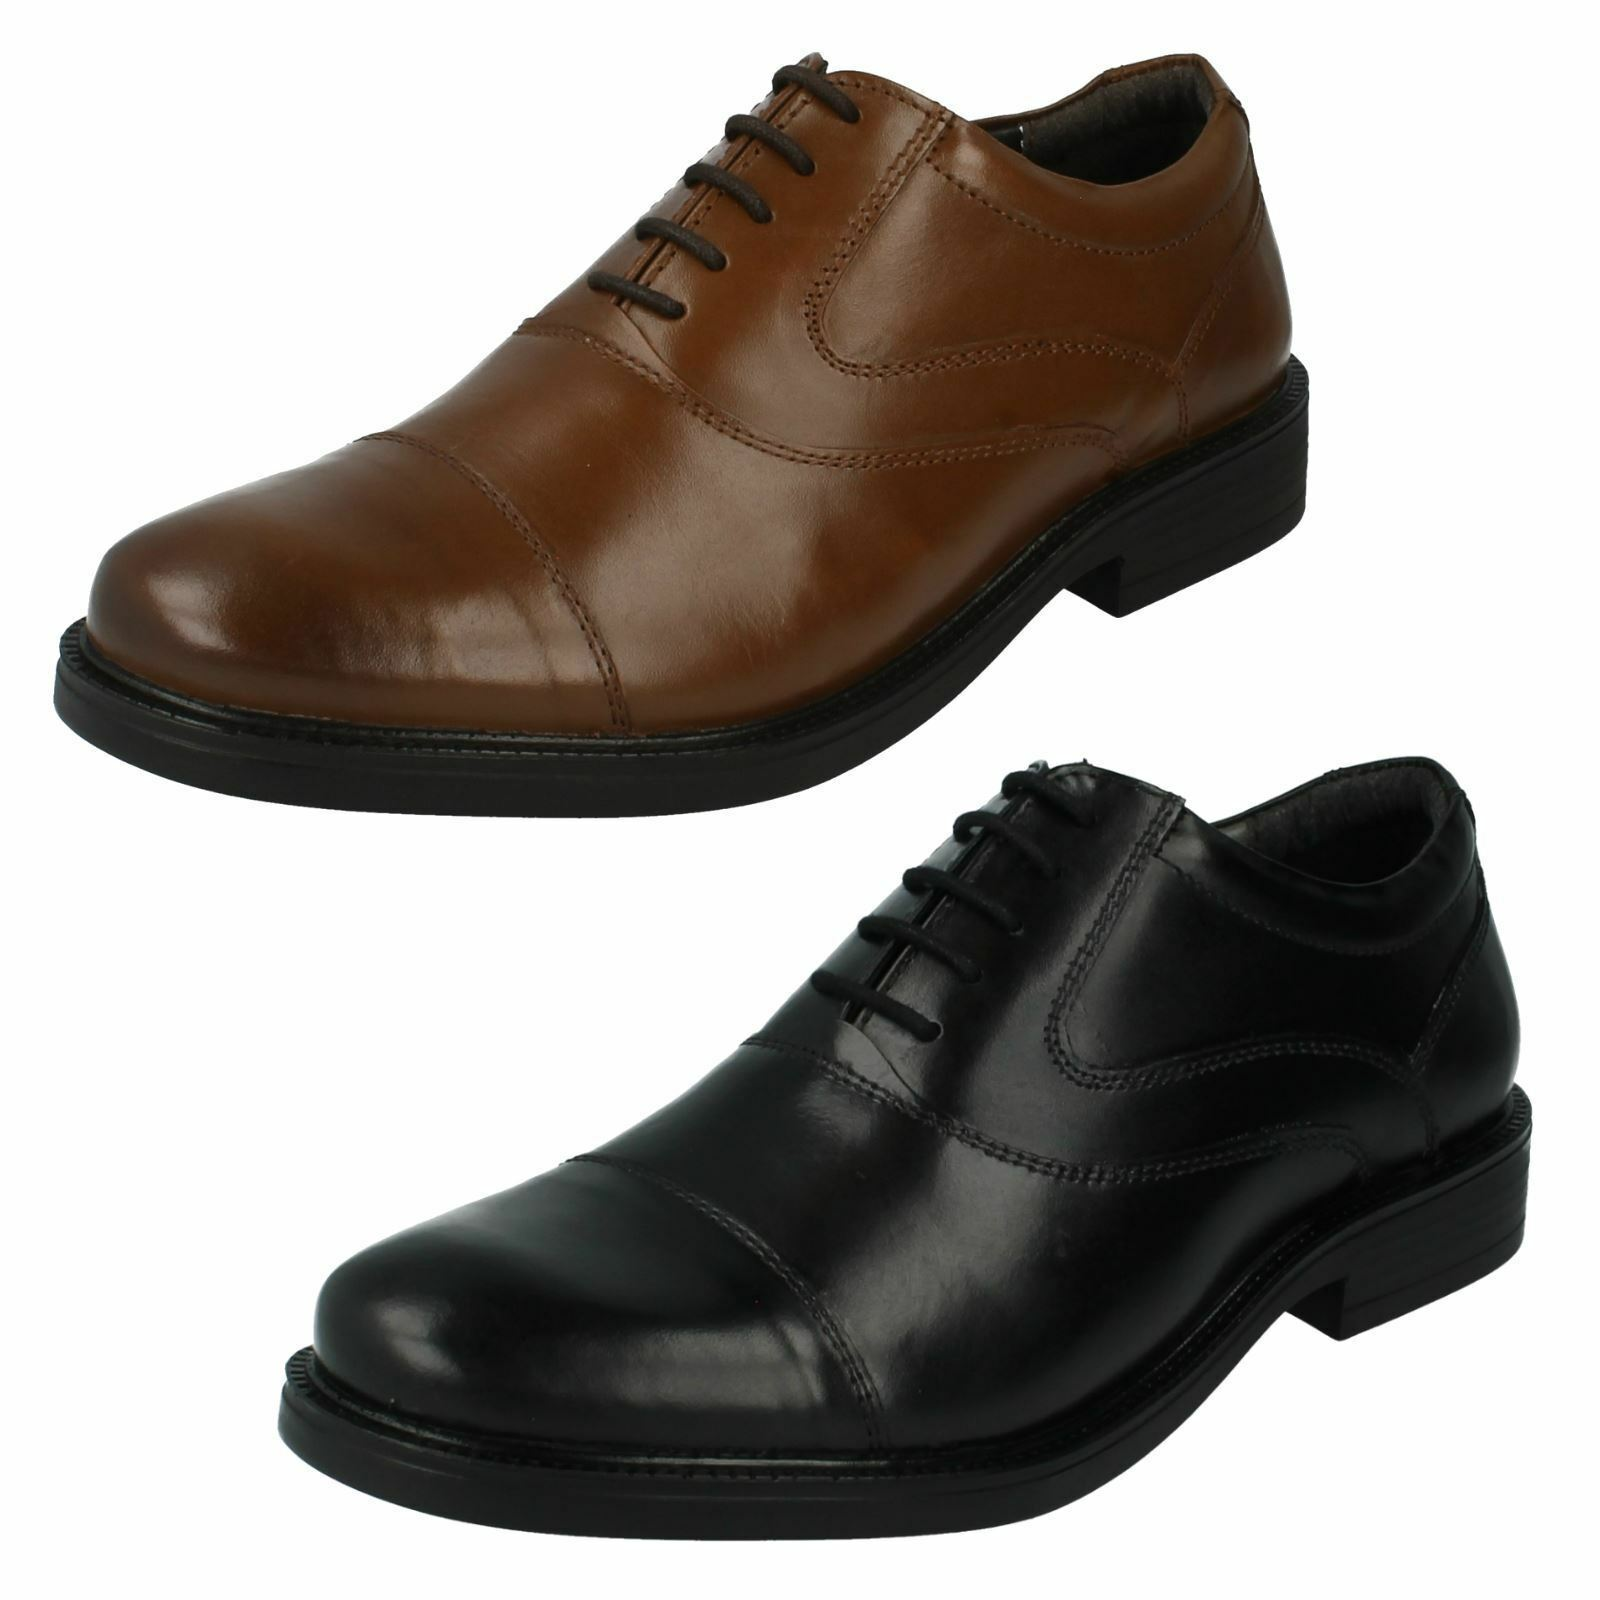 Da Uomo in Pelle Nero / Marrone Taglie Hush Puppies Scarpe UK Taglie Marrone 6 - 12 ROCKFORD Oxford bd5a6f